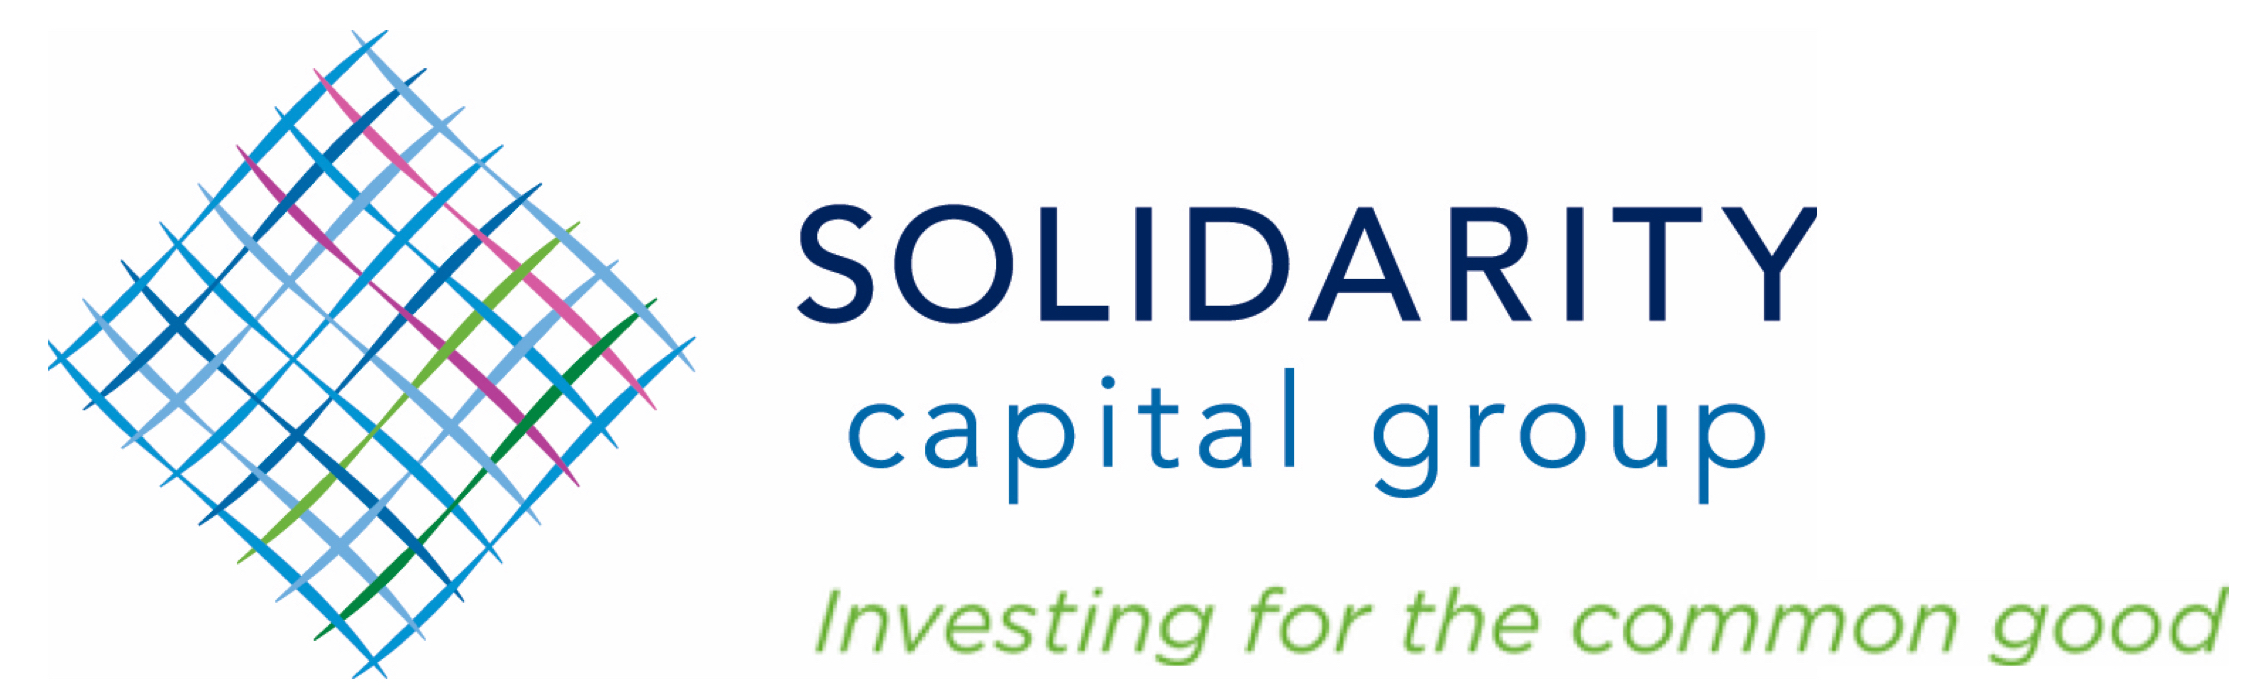 Solidarity Capital Group logo with tagline